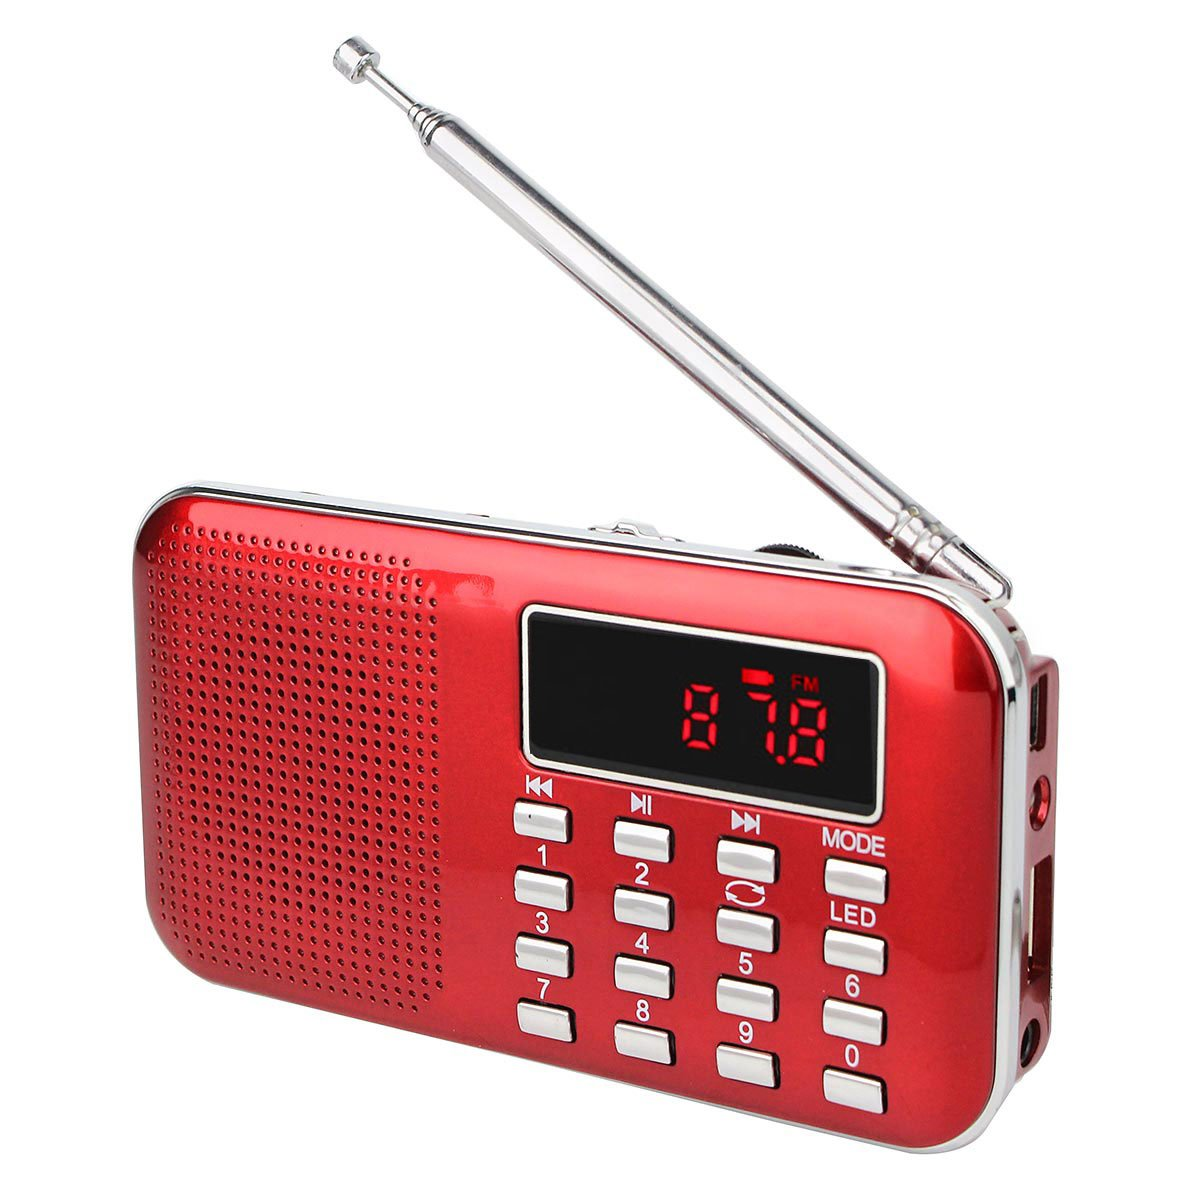 TIVDIO L-218 Portable AM/FM Transistor Radio with Mp3 Music Player Speaker Support Micro IF Card (Red)